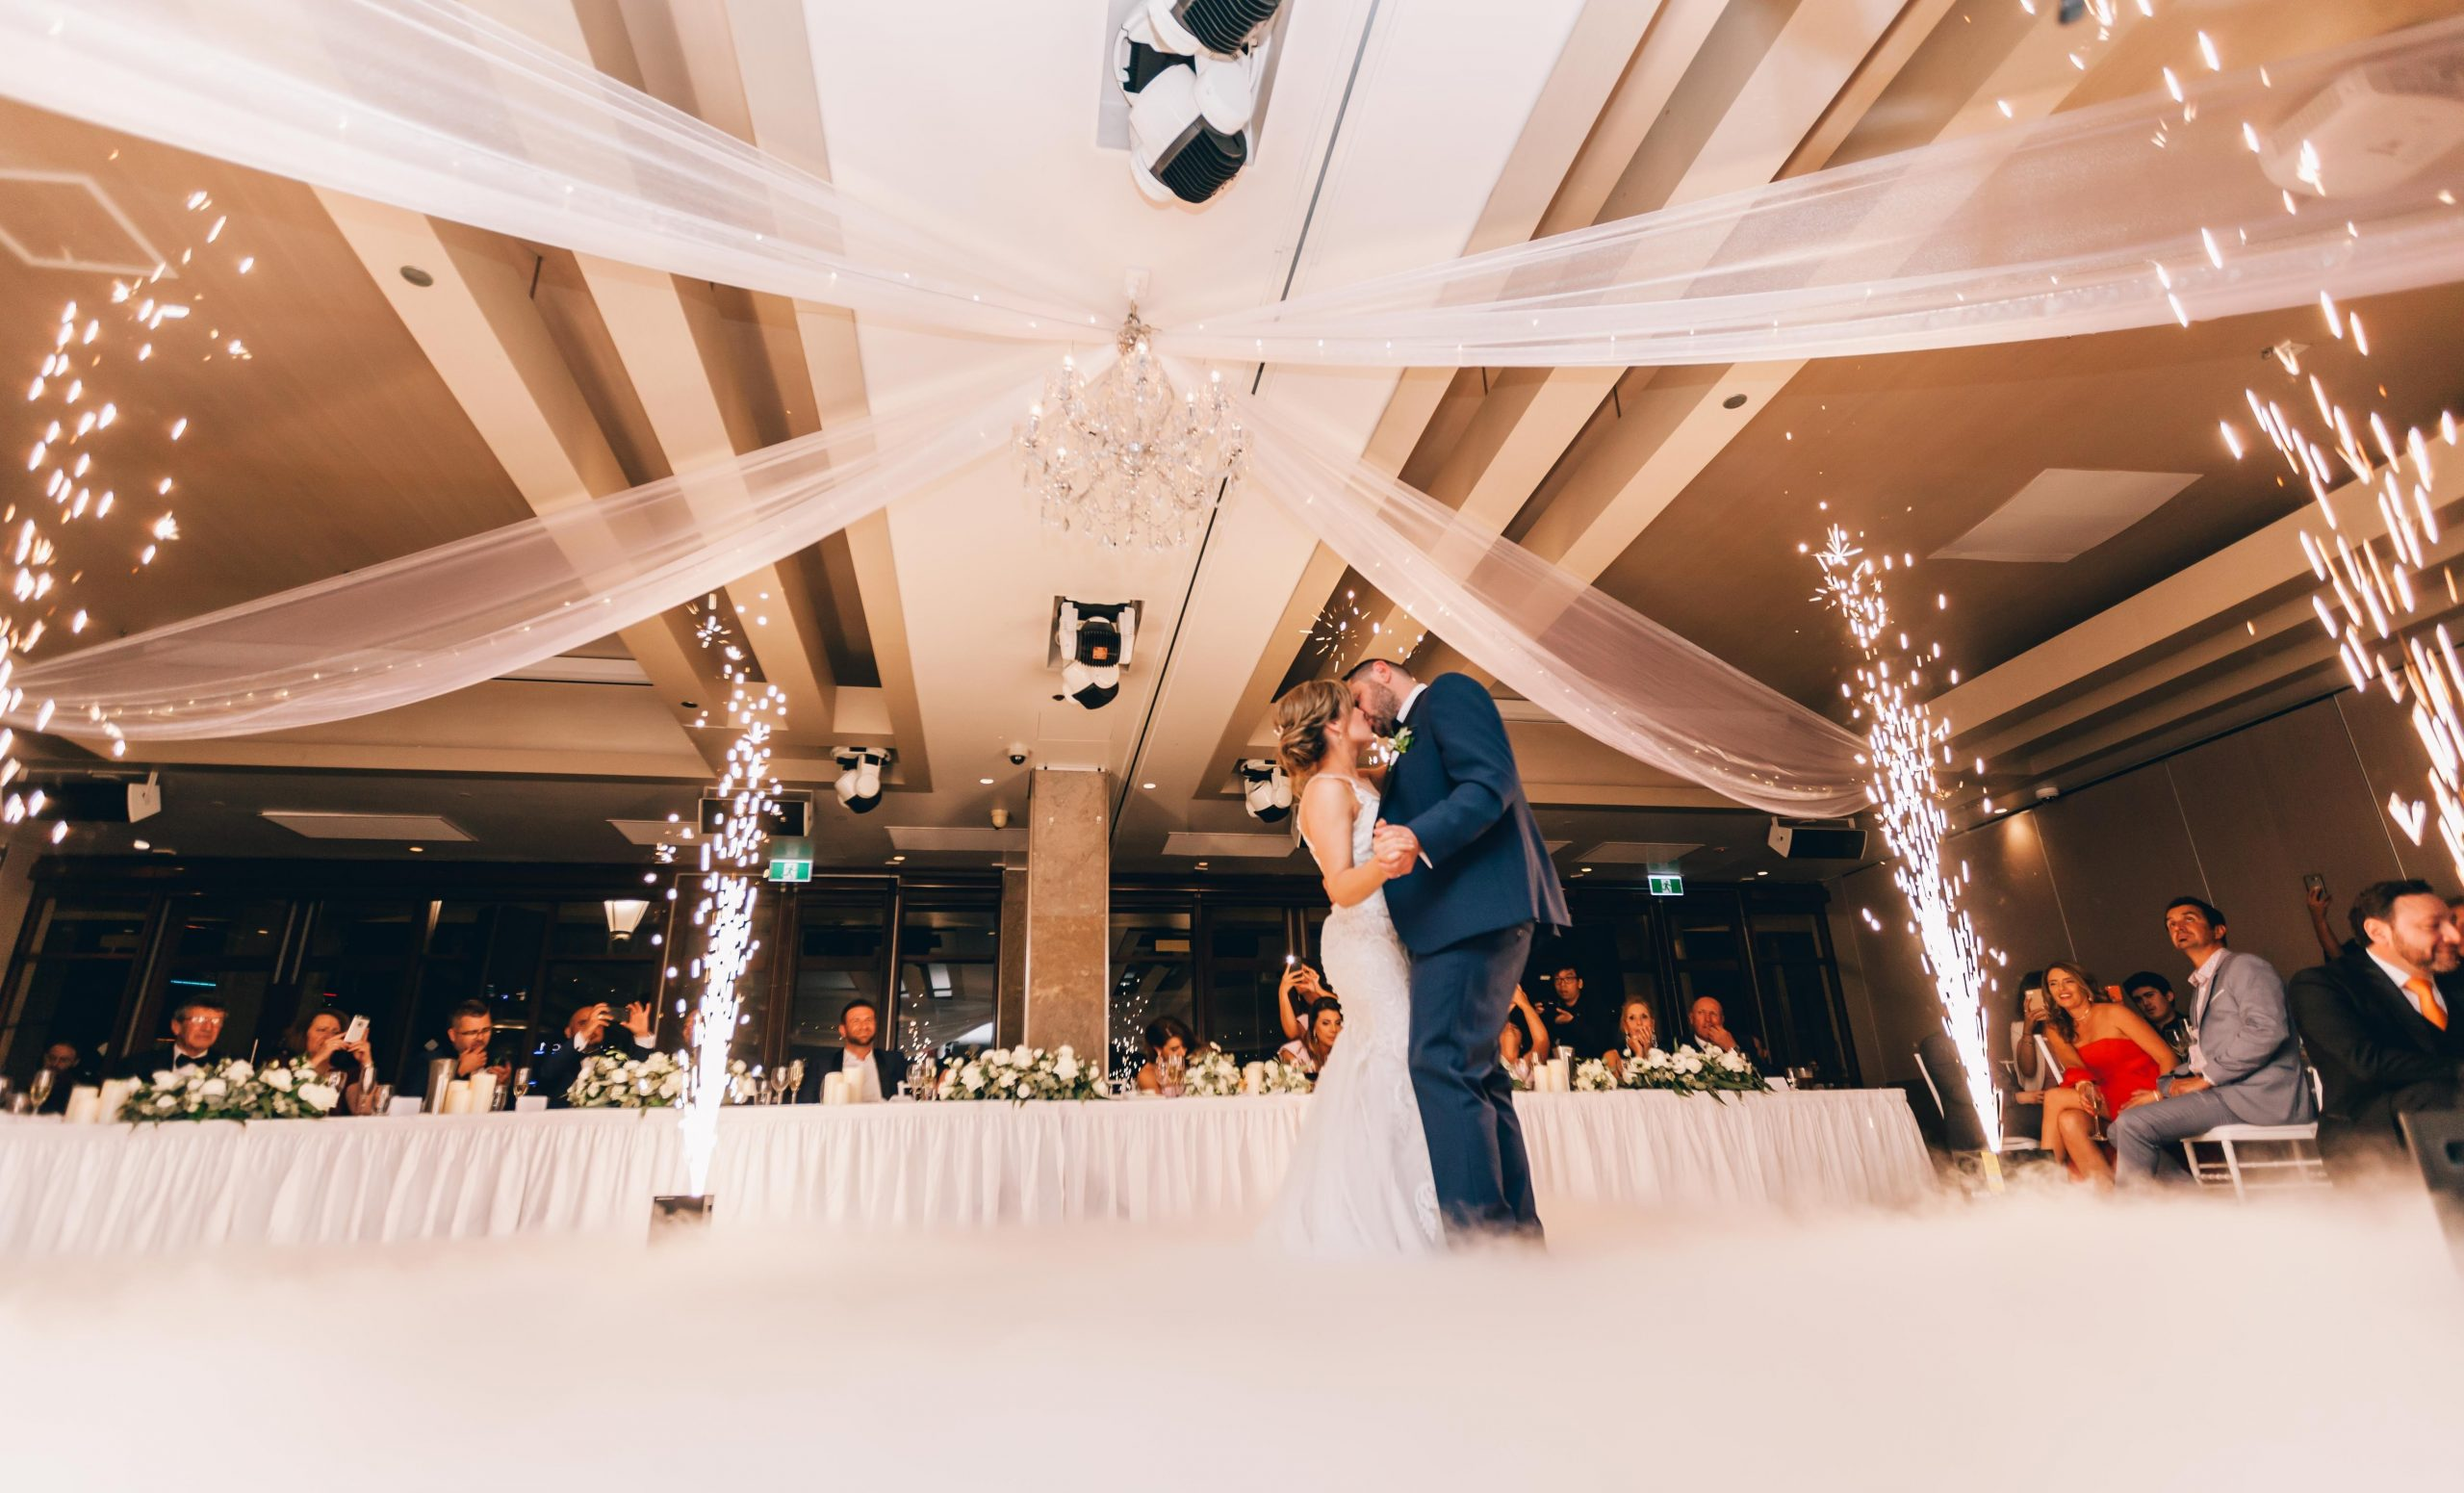 How to Turn Your Bridal Party into an Epic Dance Crew